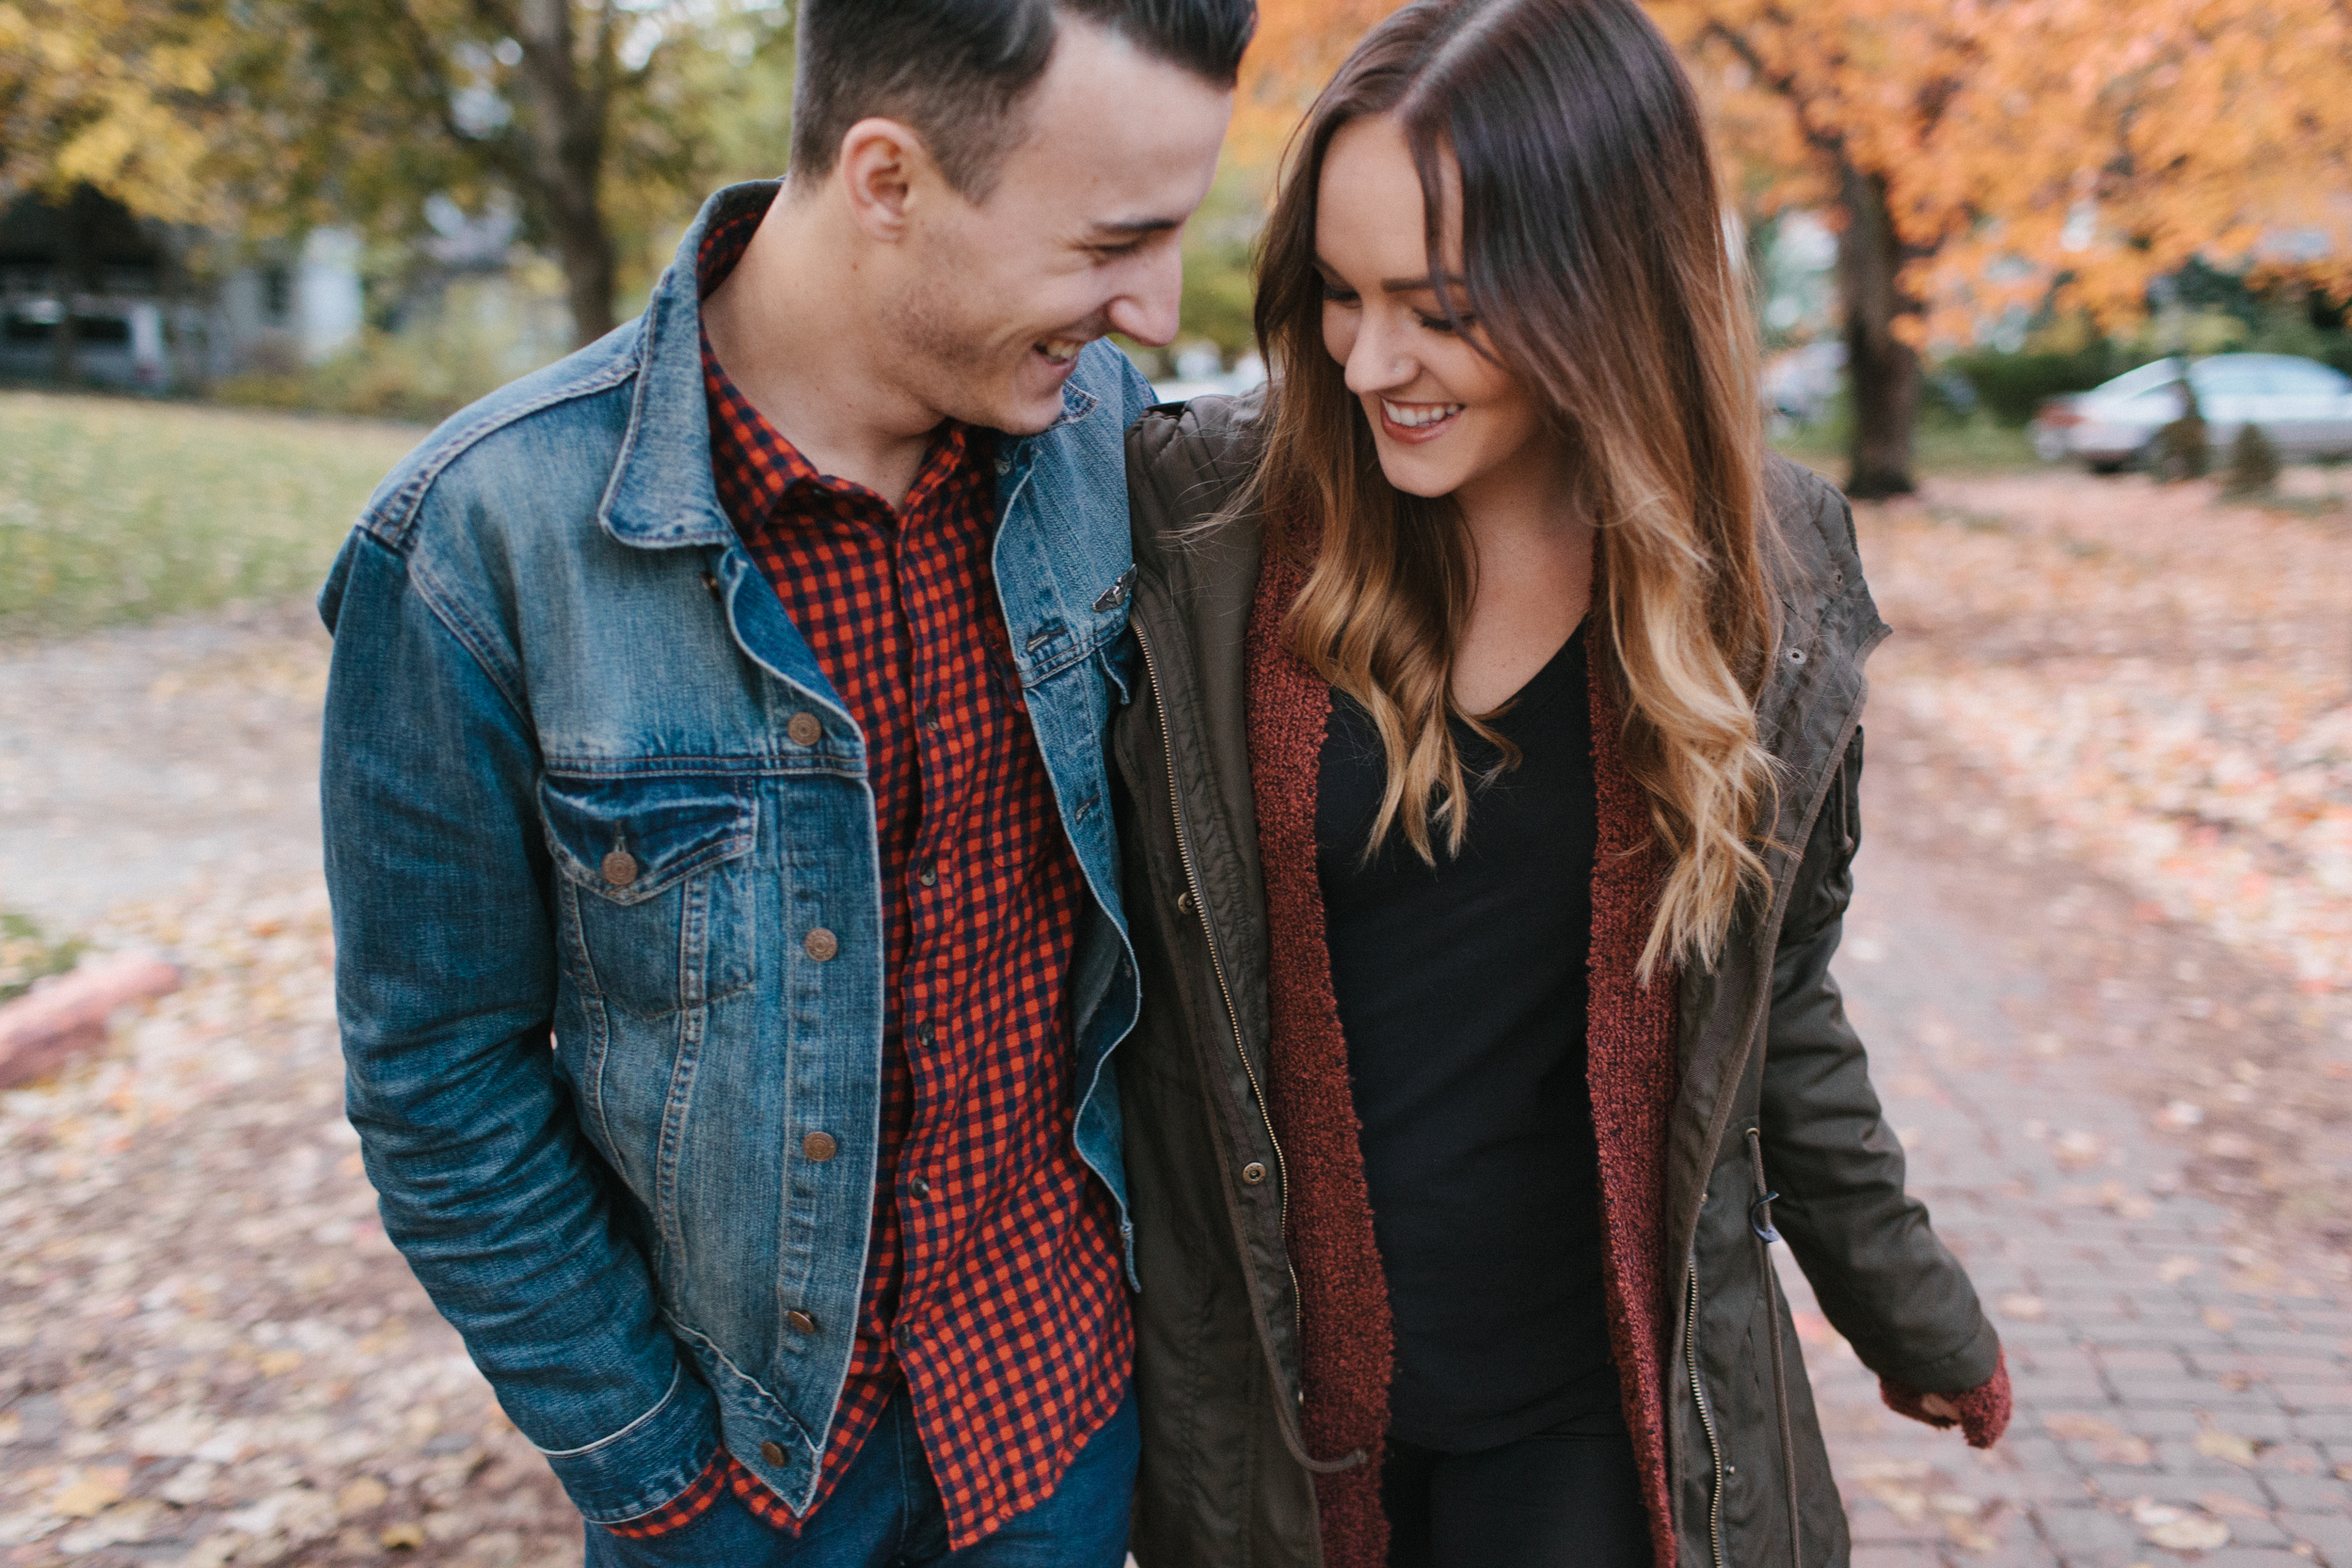 Grand Rapids Engagement photos Lifestyle Wedding Photographer Mae Stier Autumn Fall Candid Photography-005.jpg